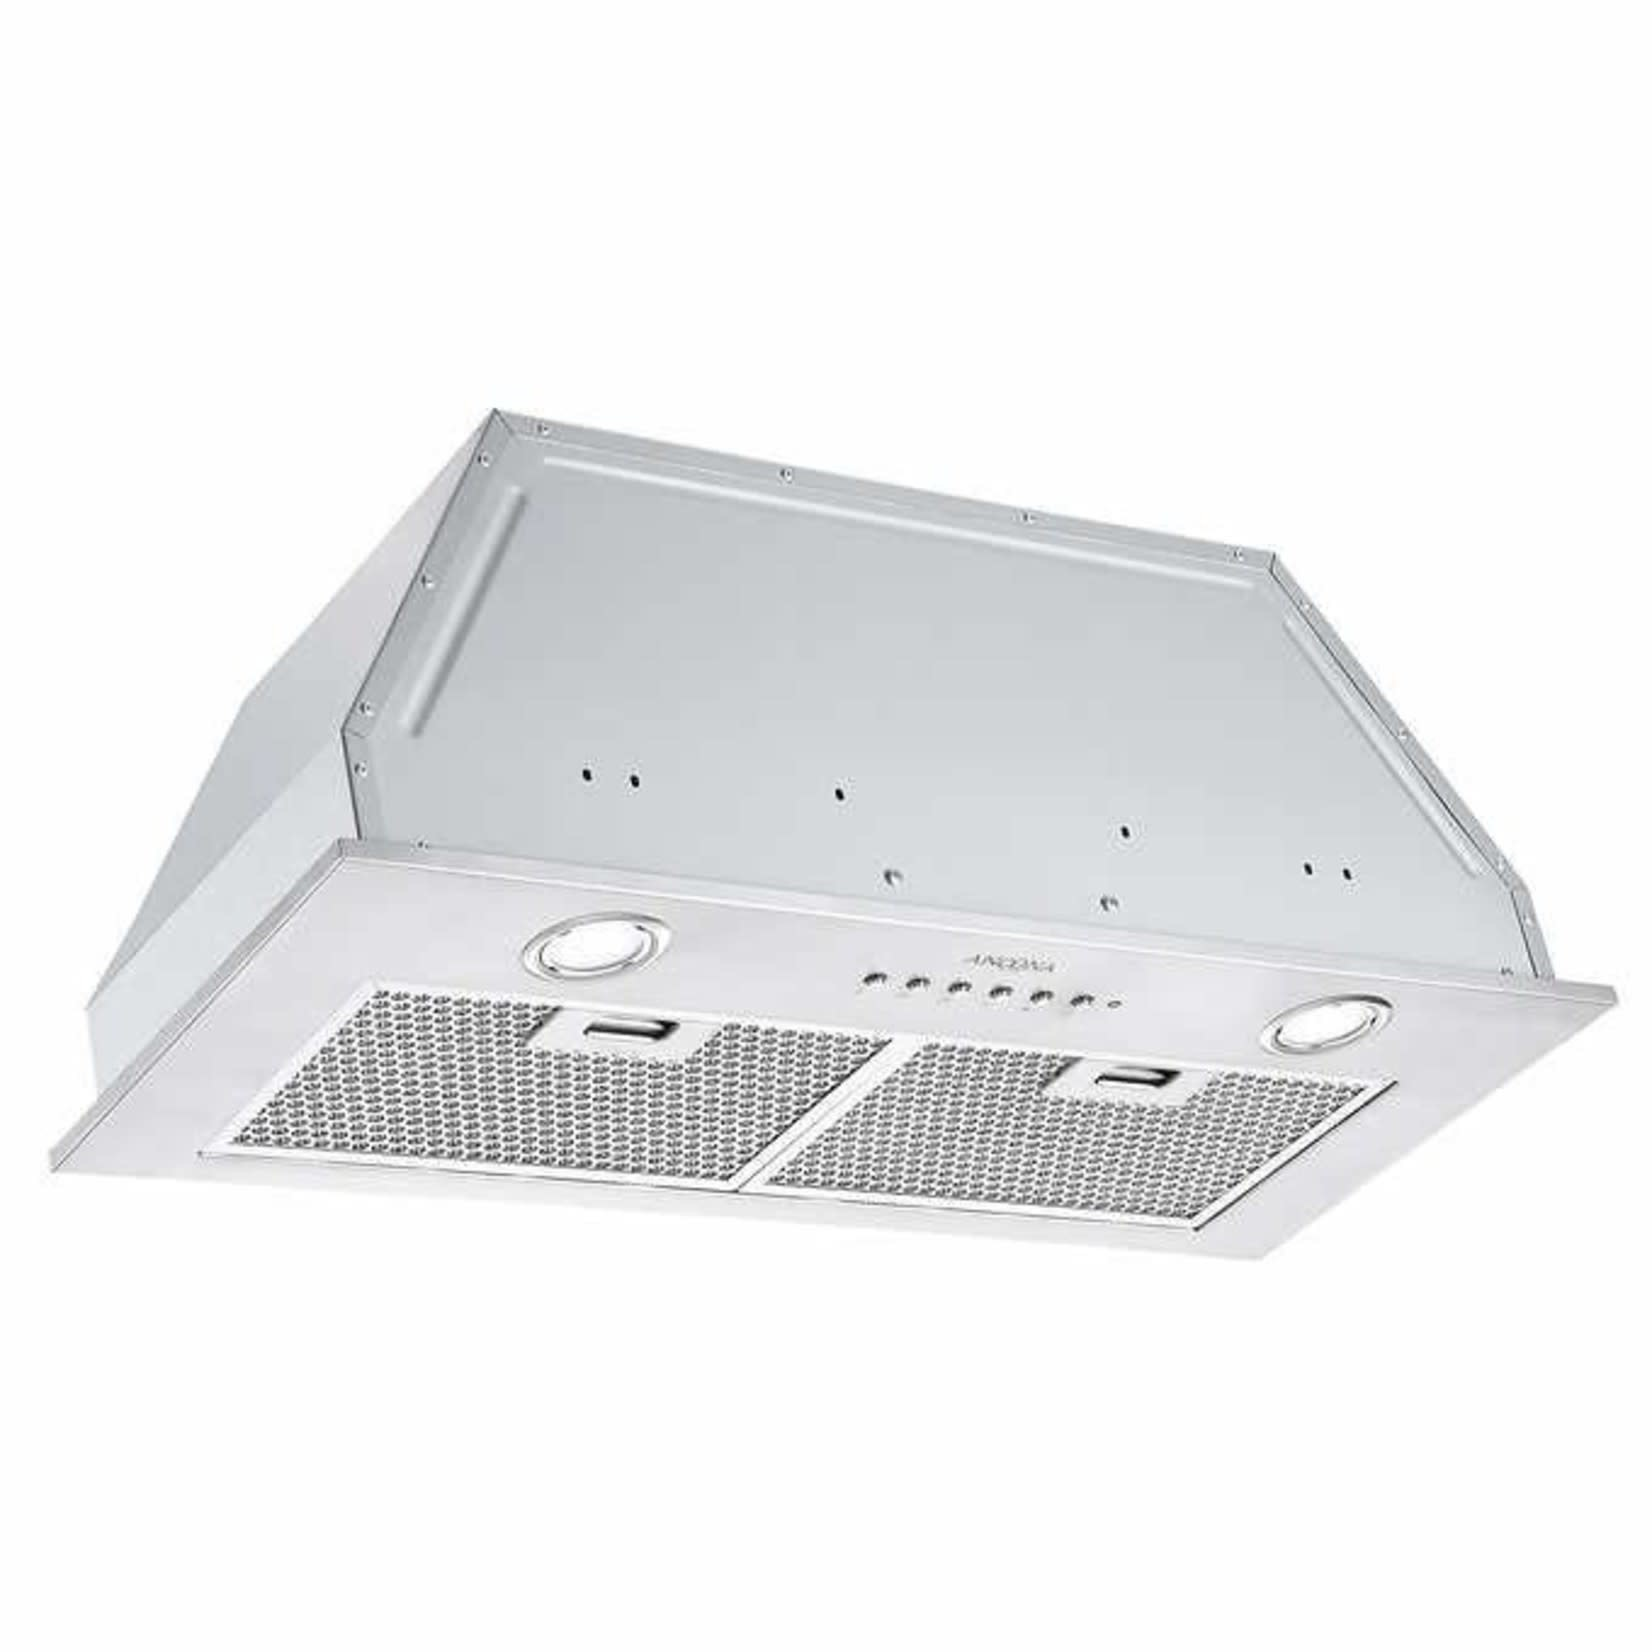 ancona Inserta III 28 in. Ducted Insert Range Hood in Stainless Steel with LED and Night Light FeatureAN-1333